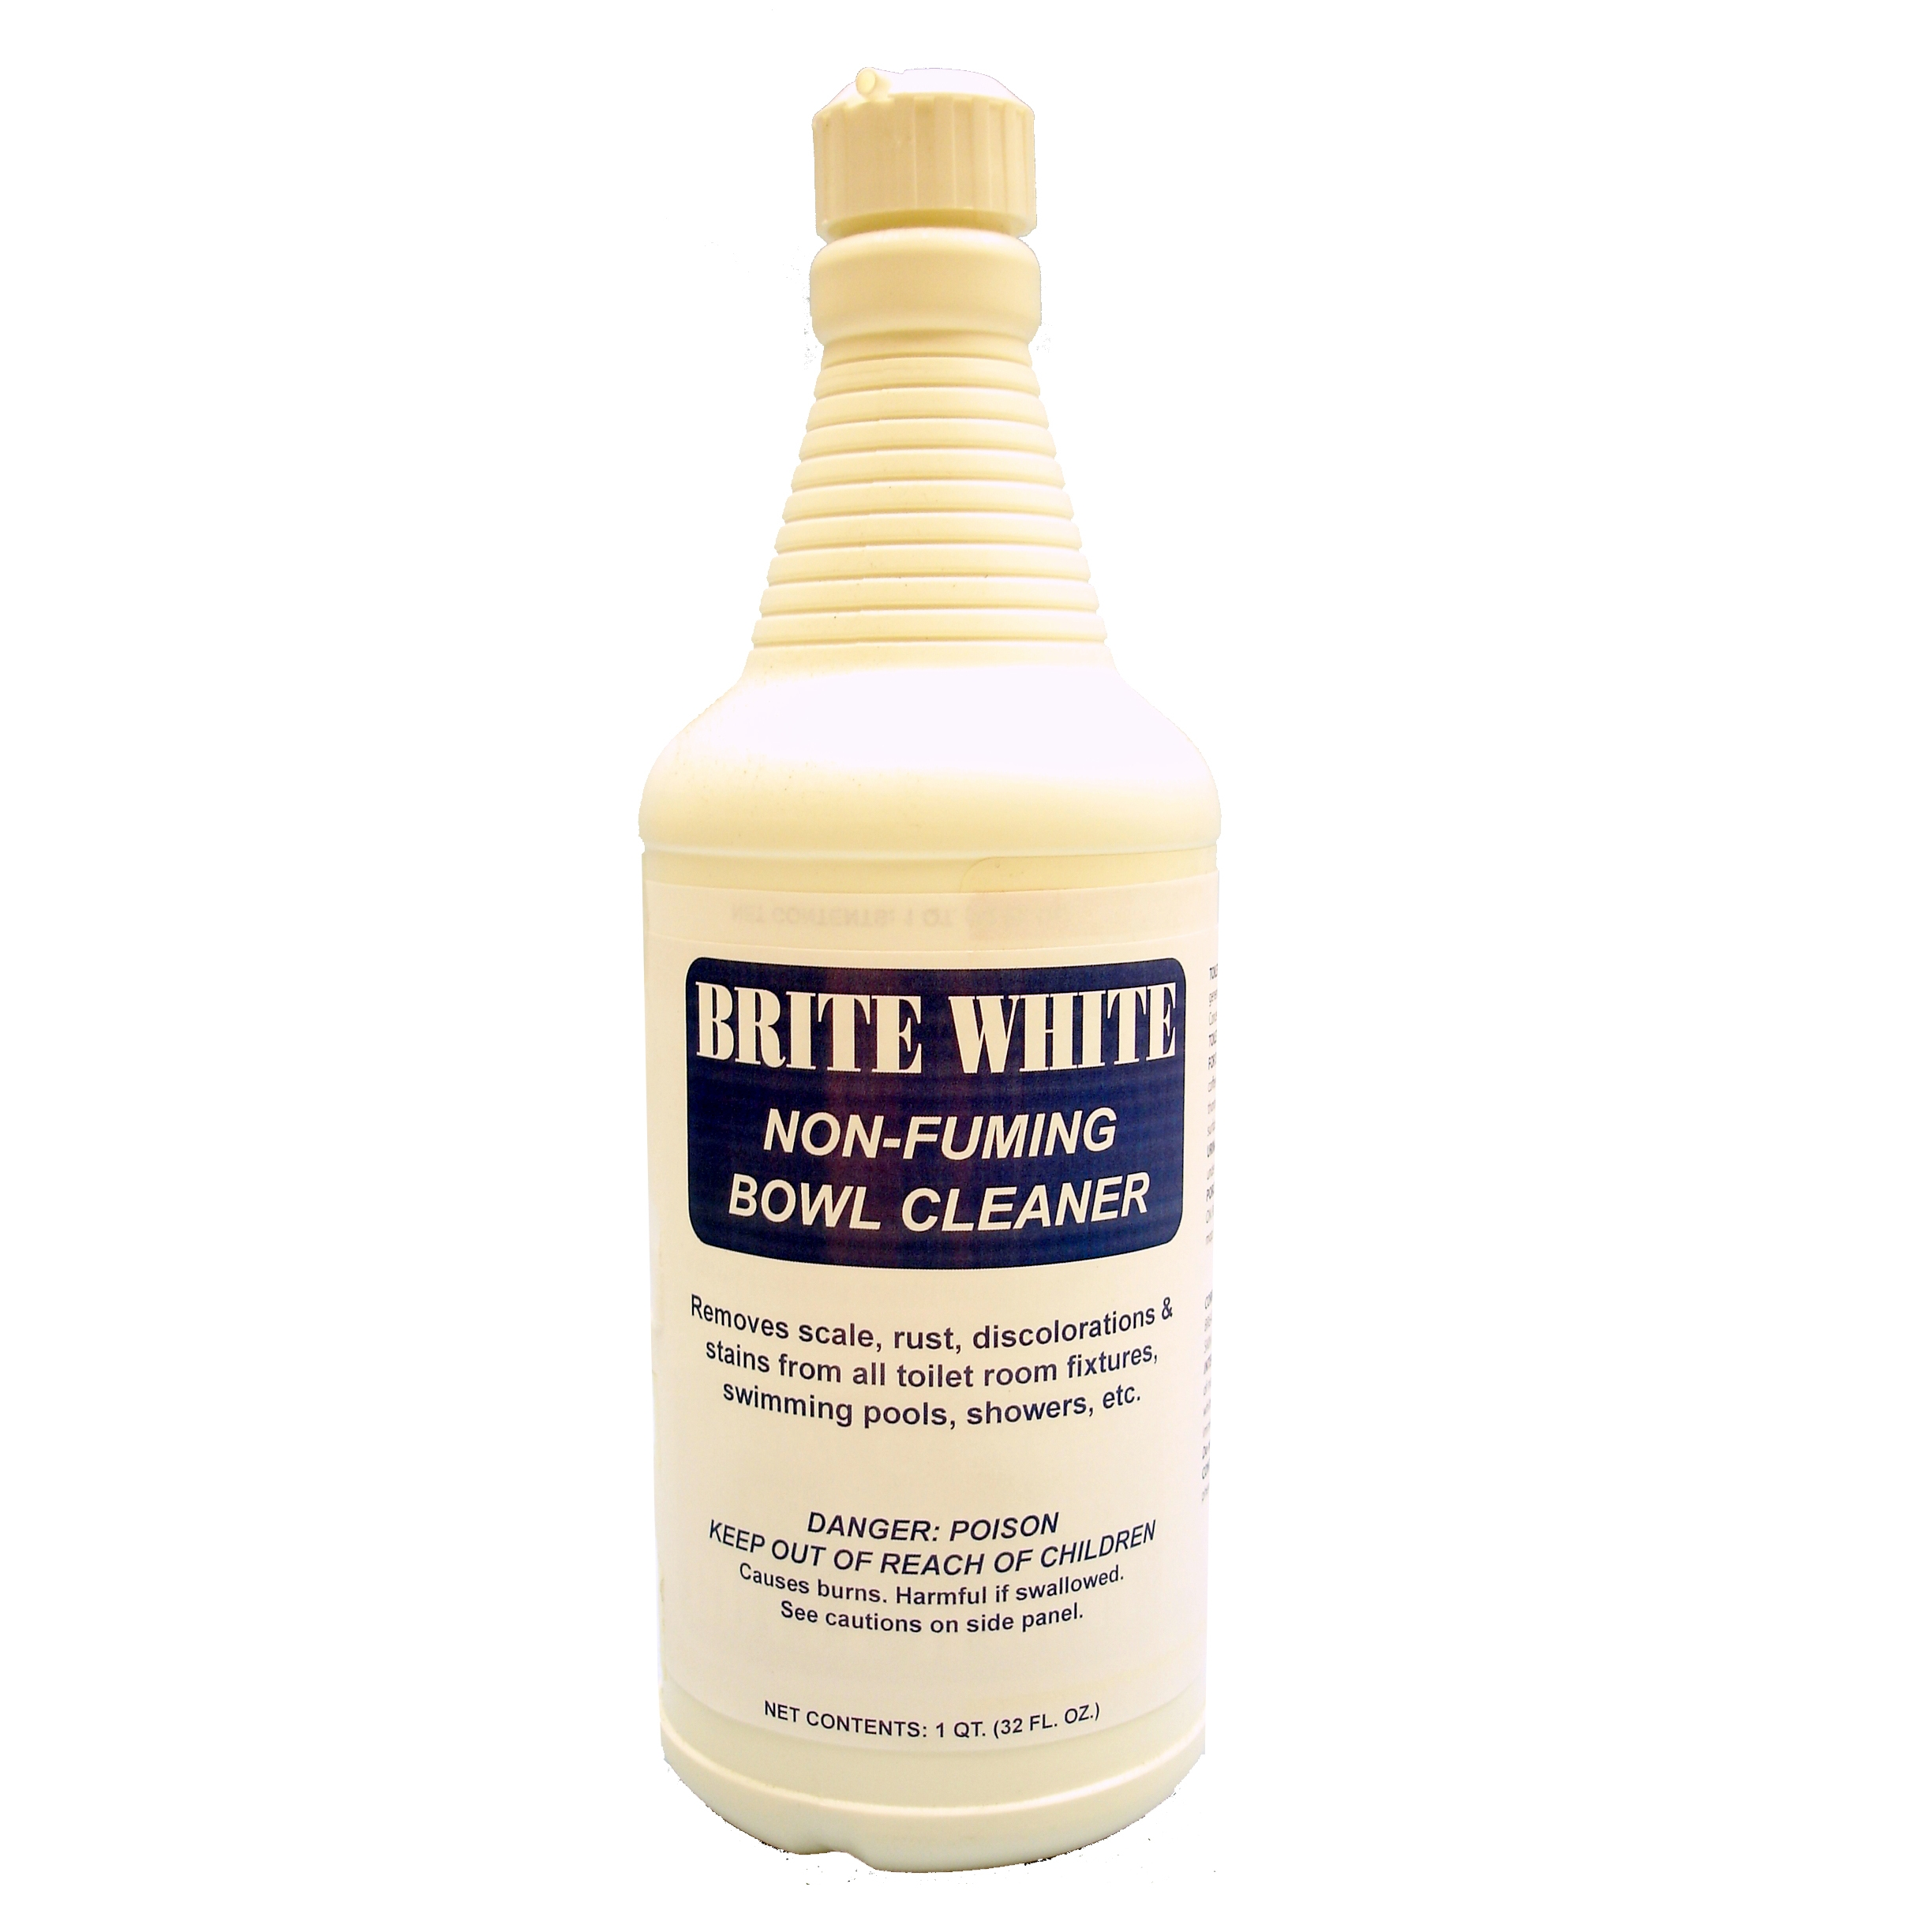 Brite White Bowl Cleaner